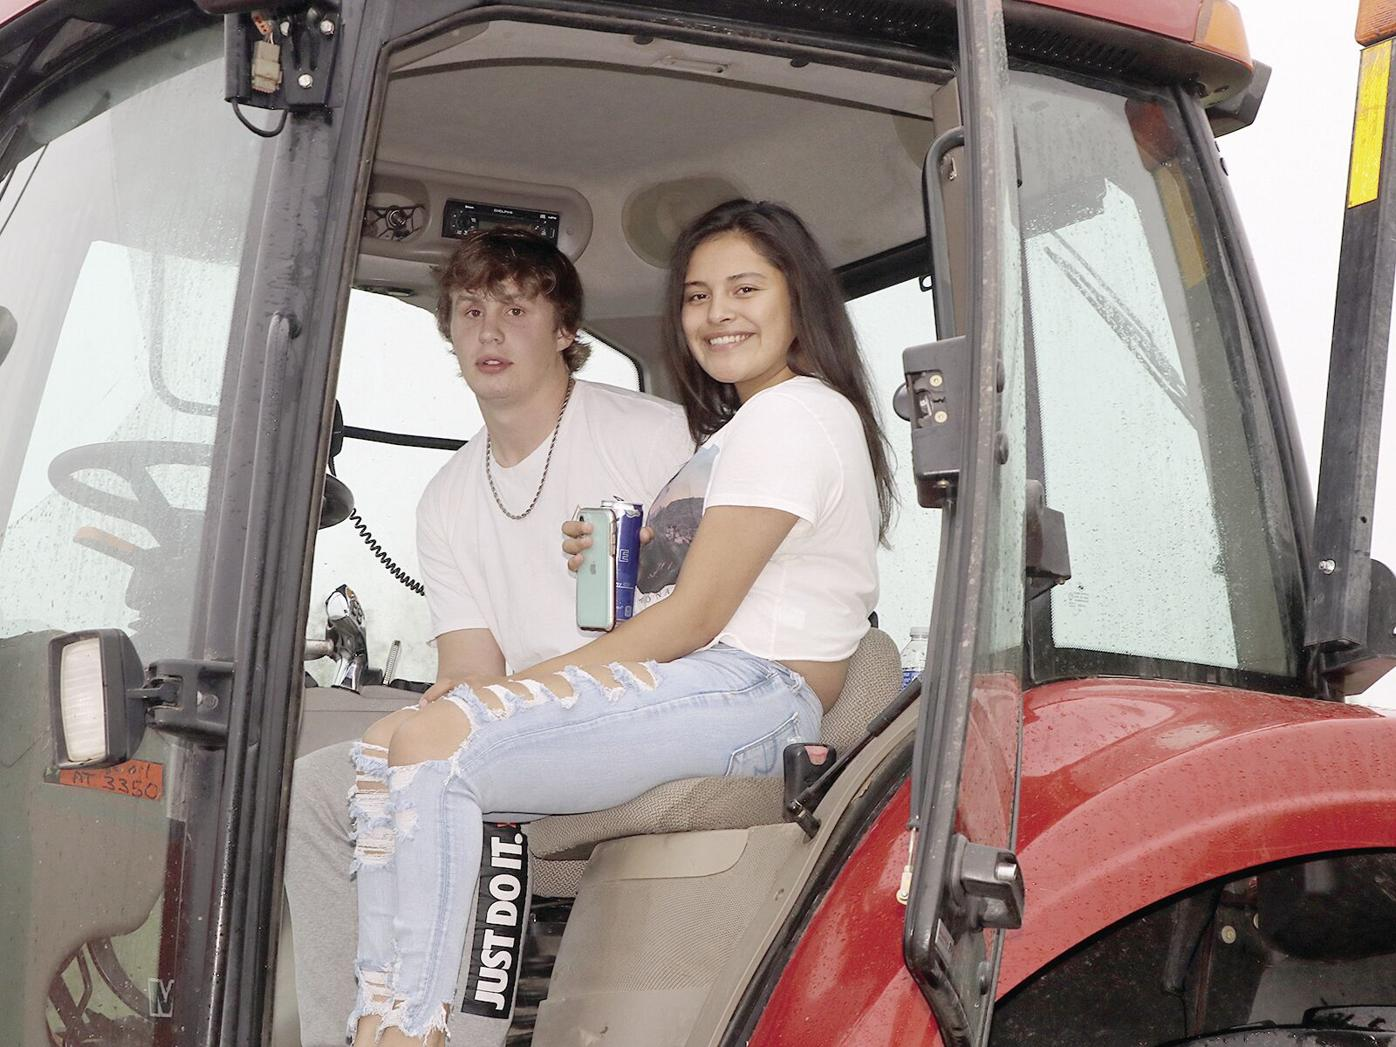 Tractor day brant and Aaliyah.jpg